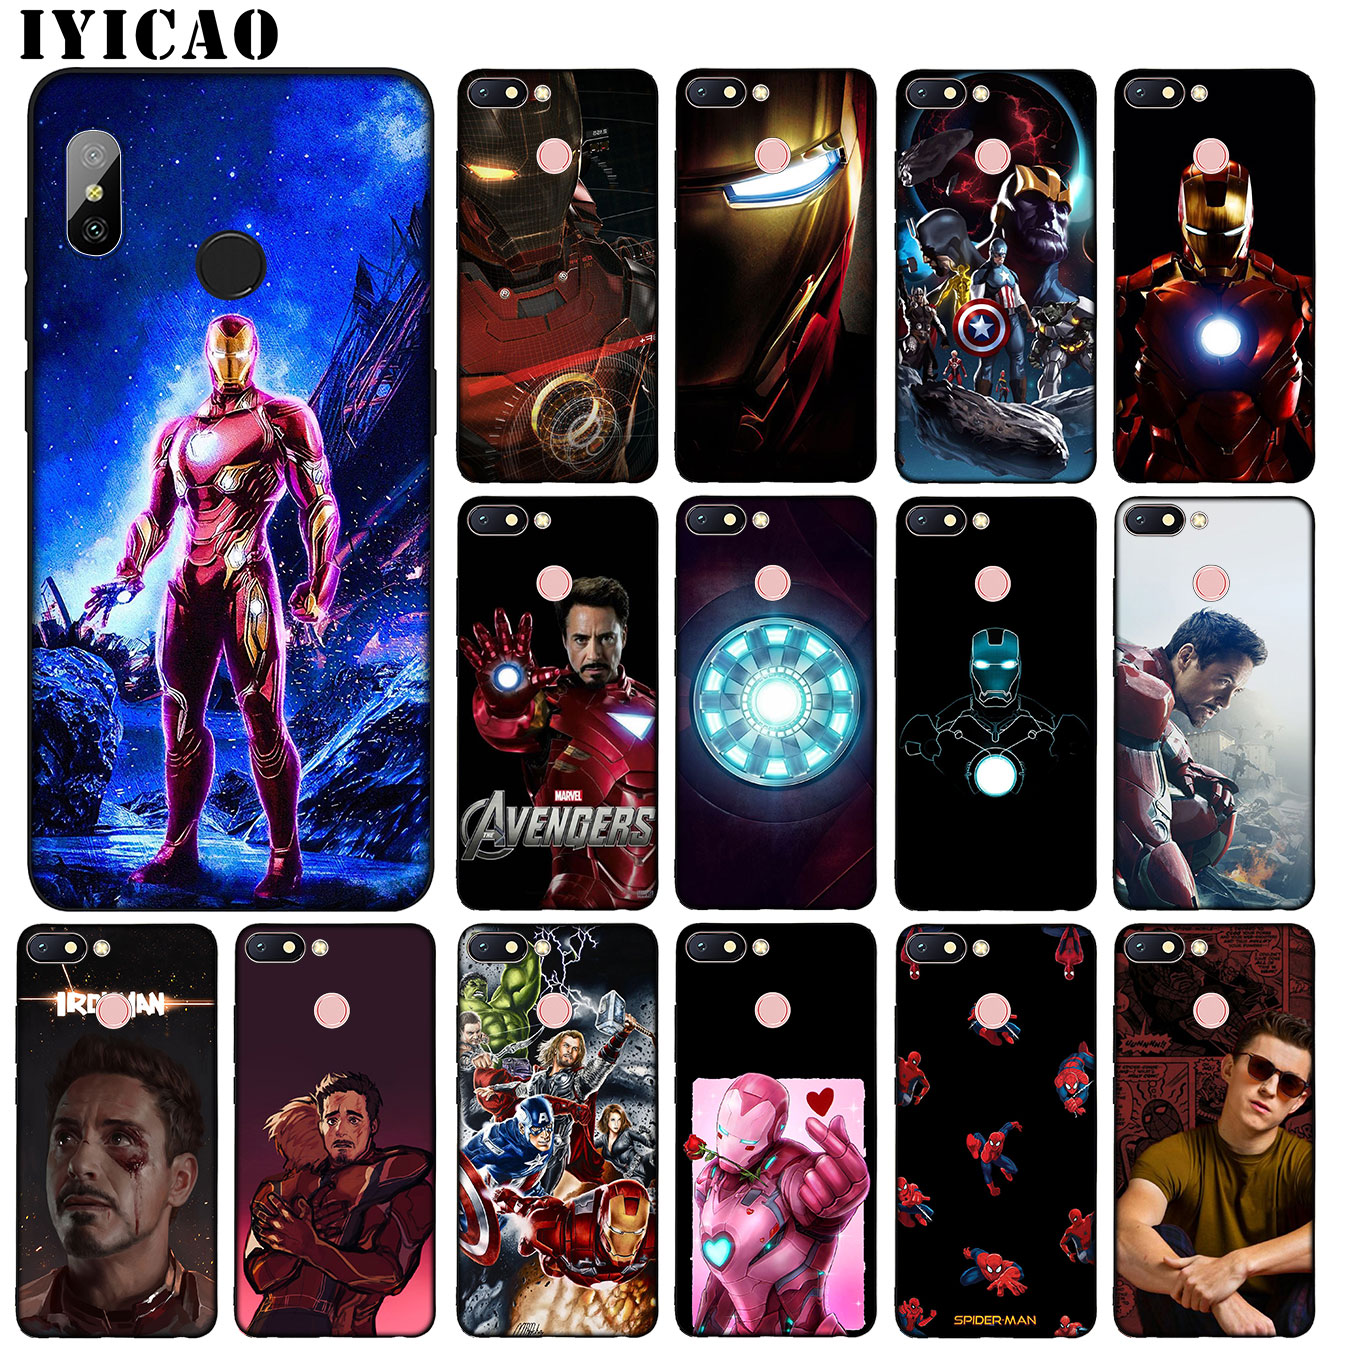 The Avengers Endgame Spider Marvel Iron Man Thanos Soft Silicone Phone Case For Xiaomi Redmi K20 8A 7A 6A Note 8 7 5 6 Pro Cover